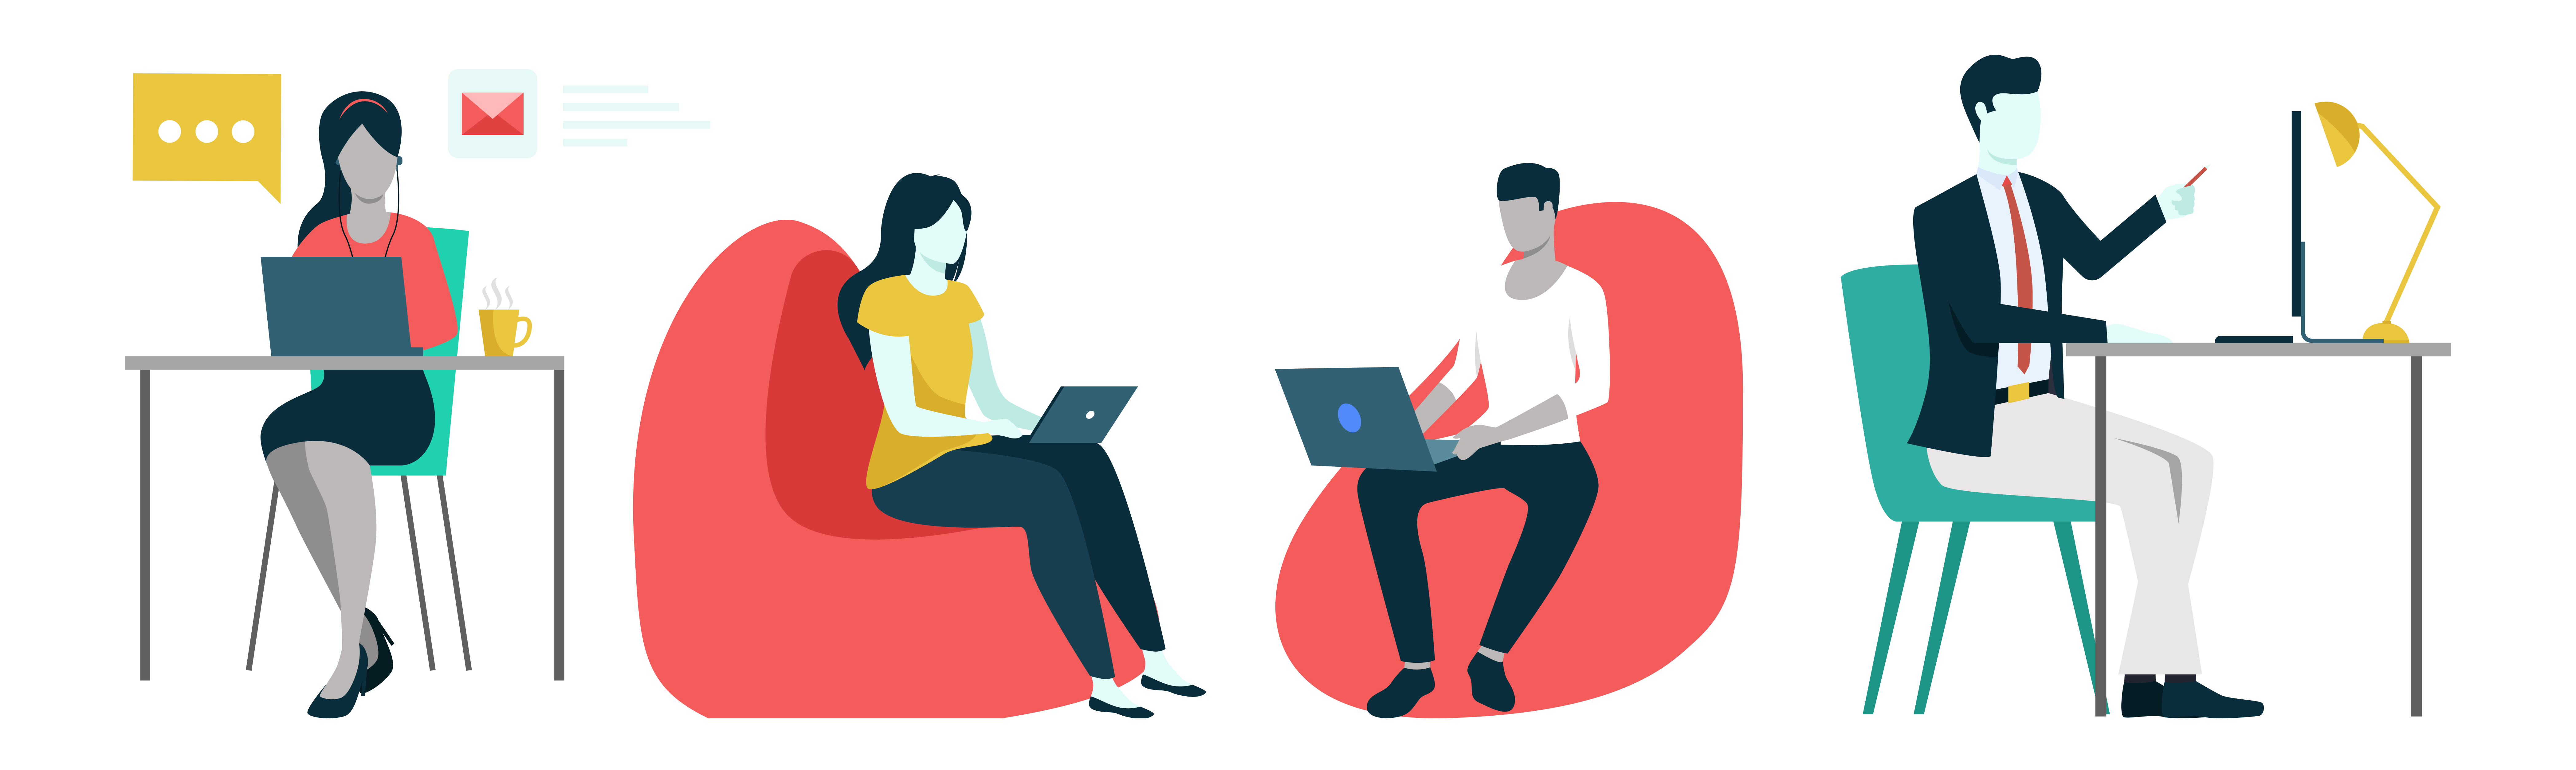 Illustration shows financial wellbeing employees working from home and at the office